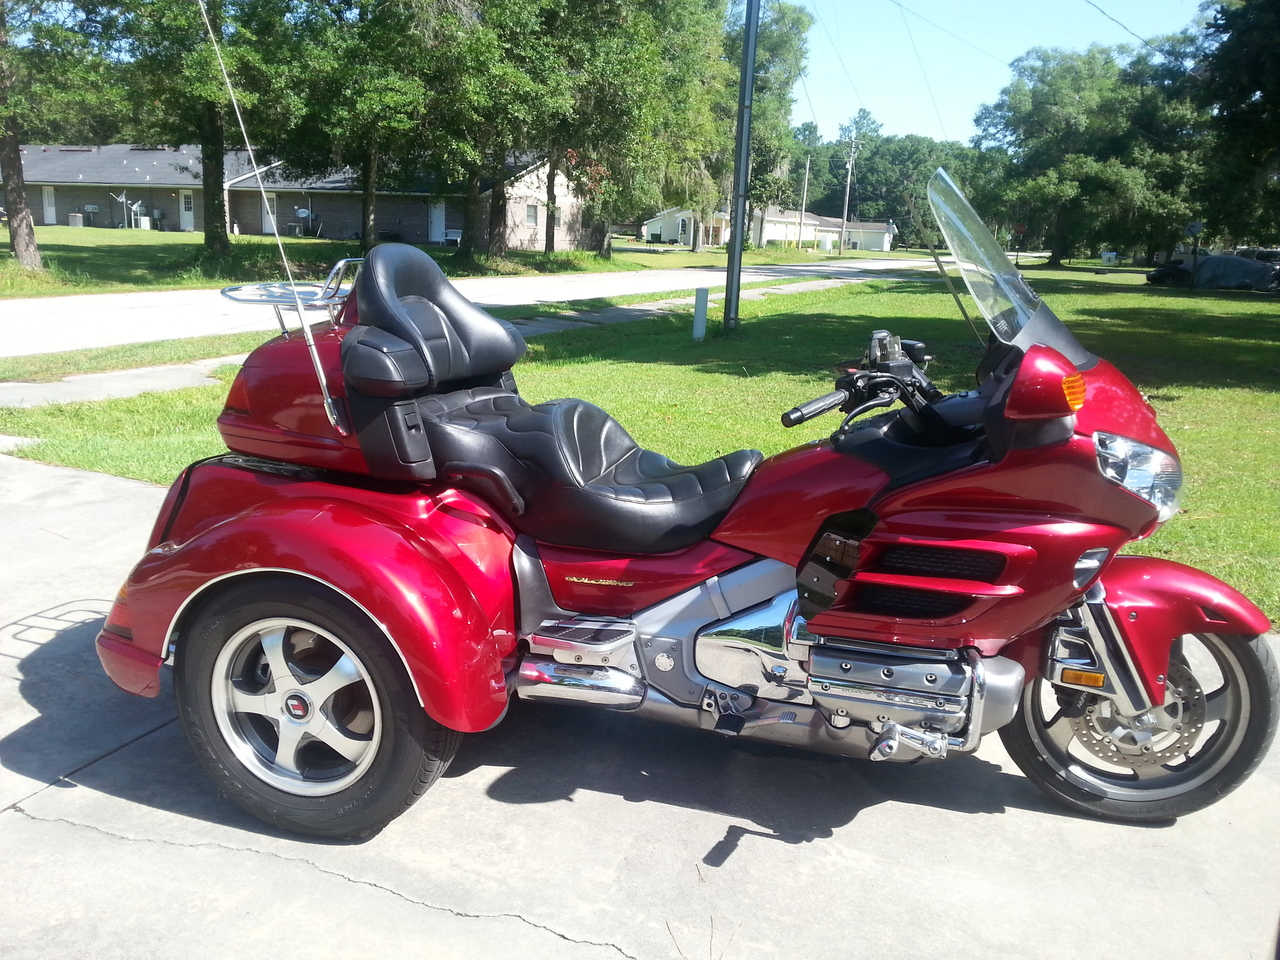 2003 Honda Gold Wing 1800, motorcycle listing